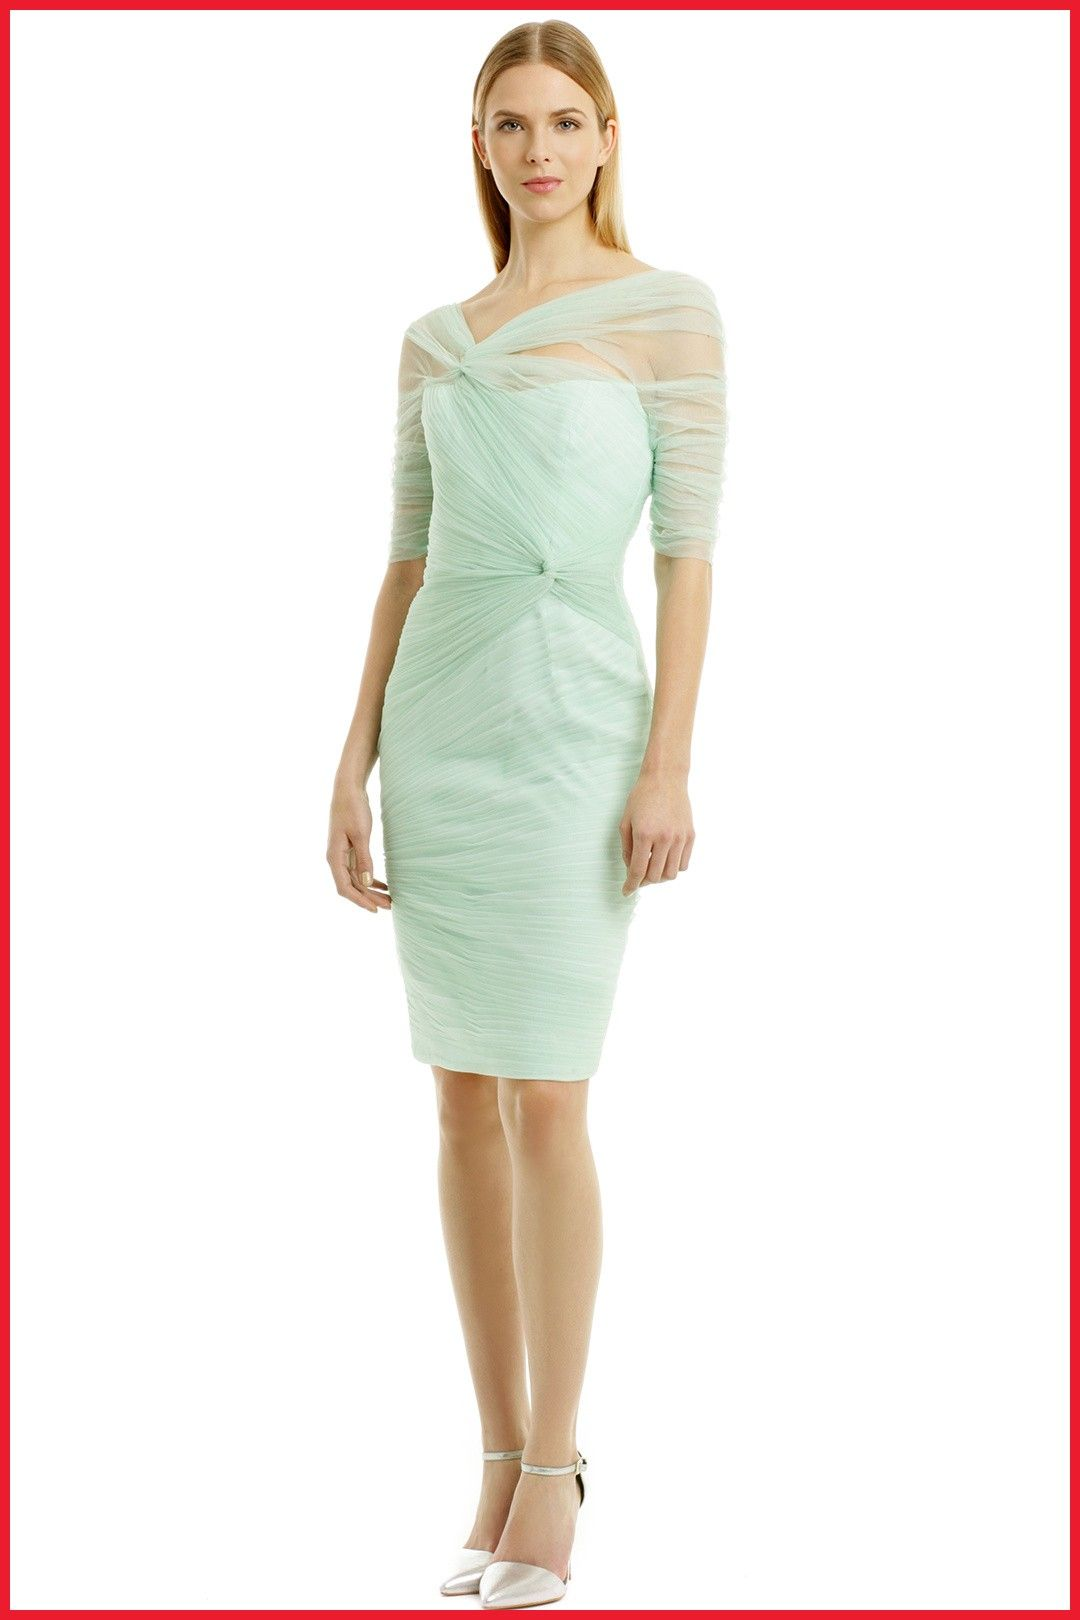 Mint Green Wedding Guest Dress 258492 Light Blue Mother Of the Bride ...